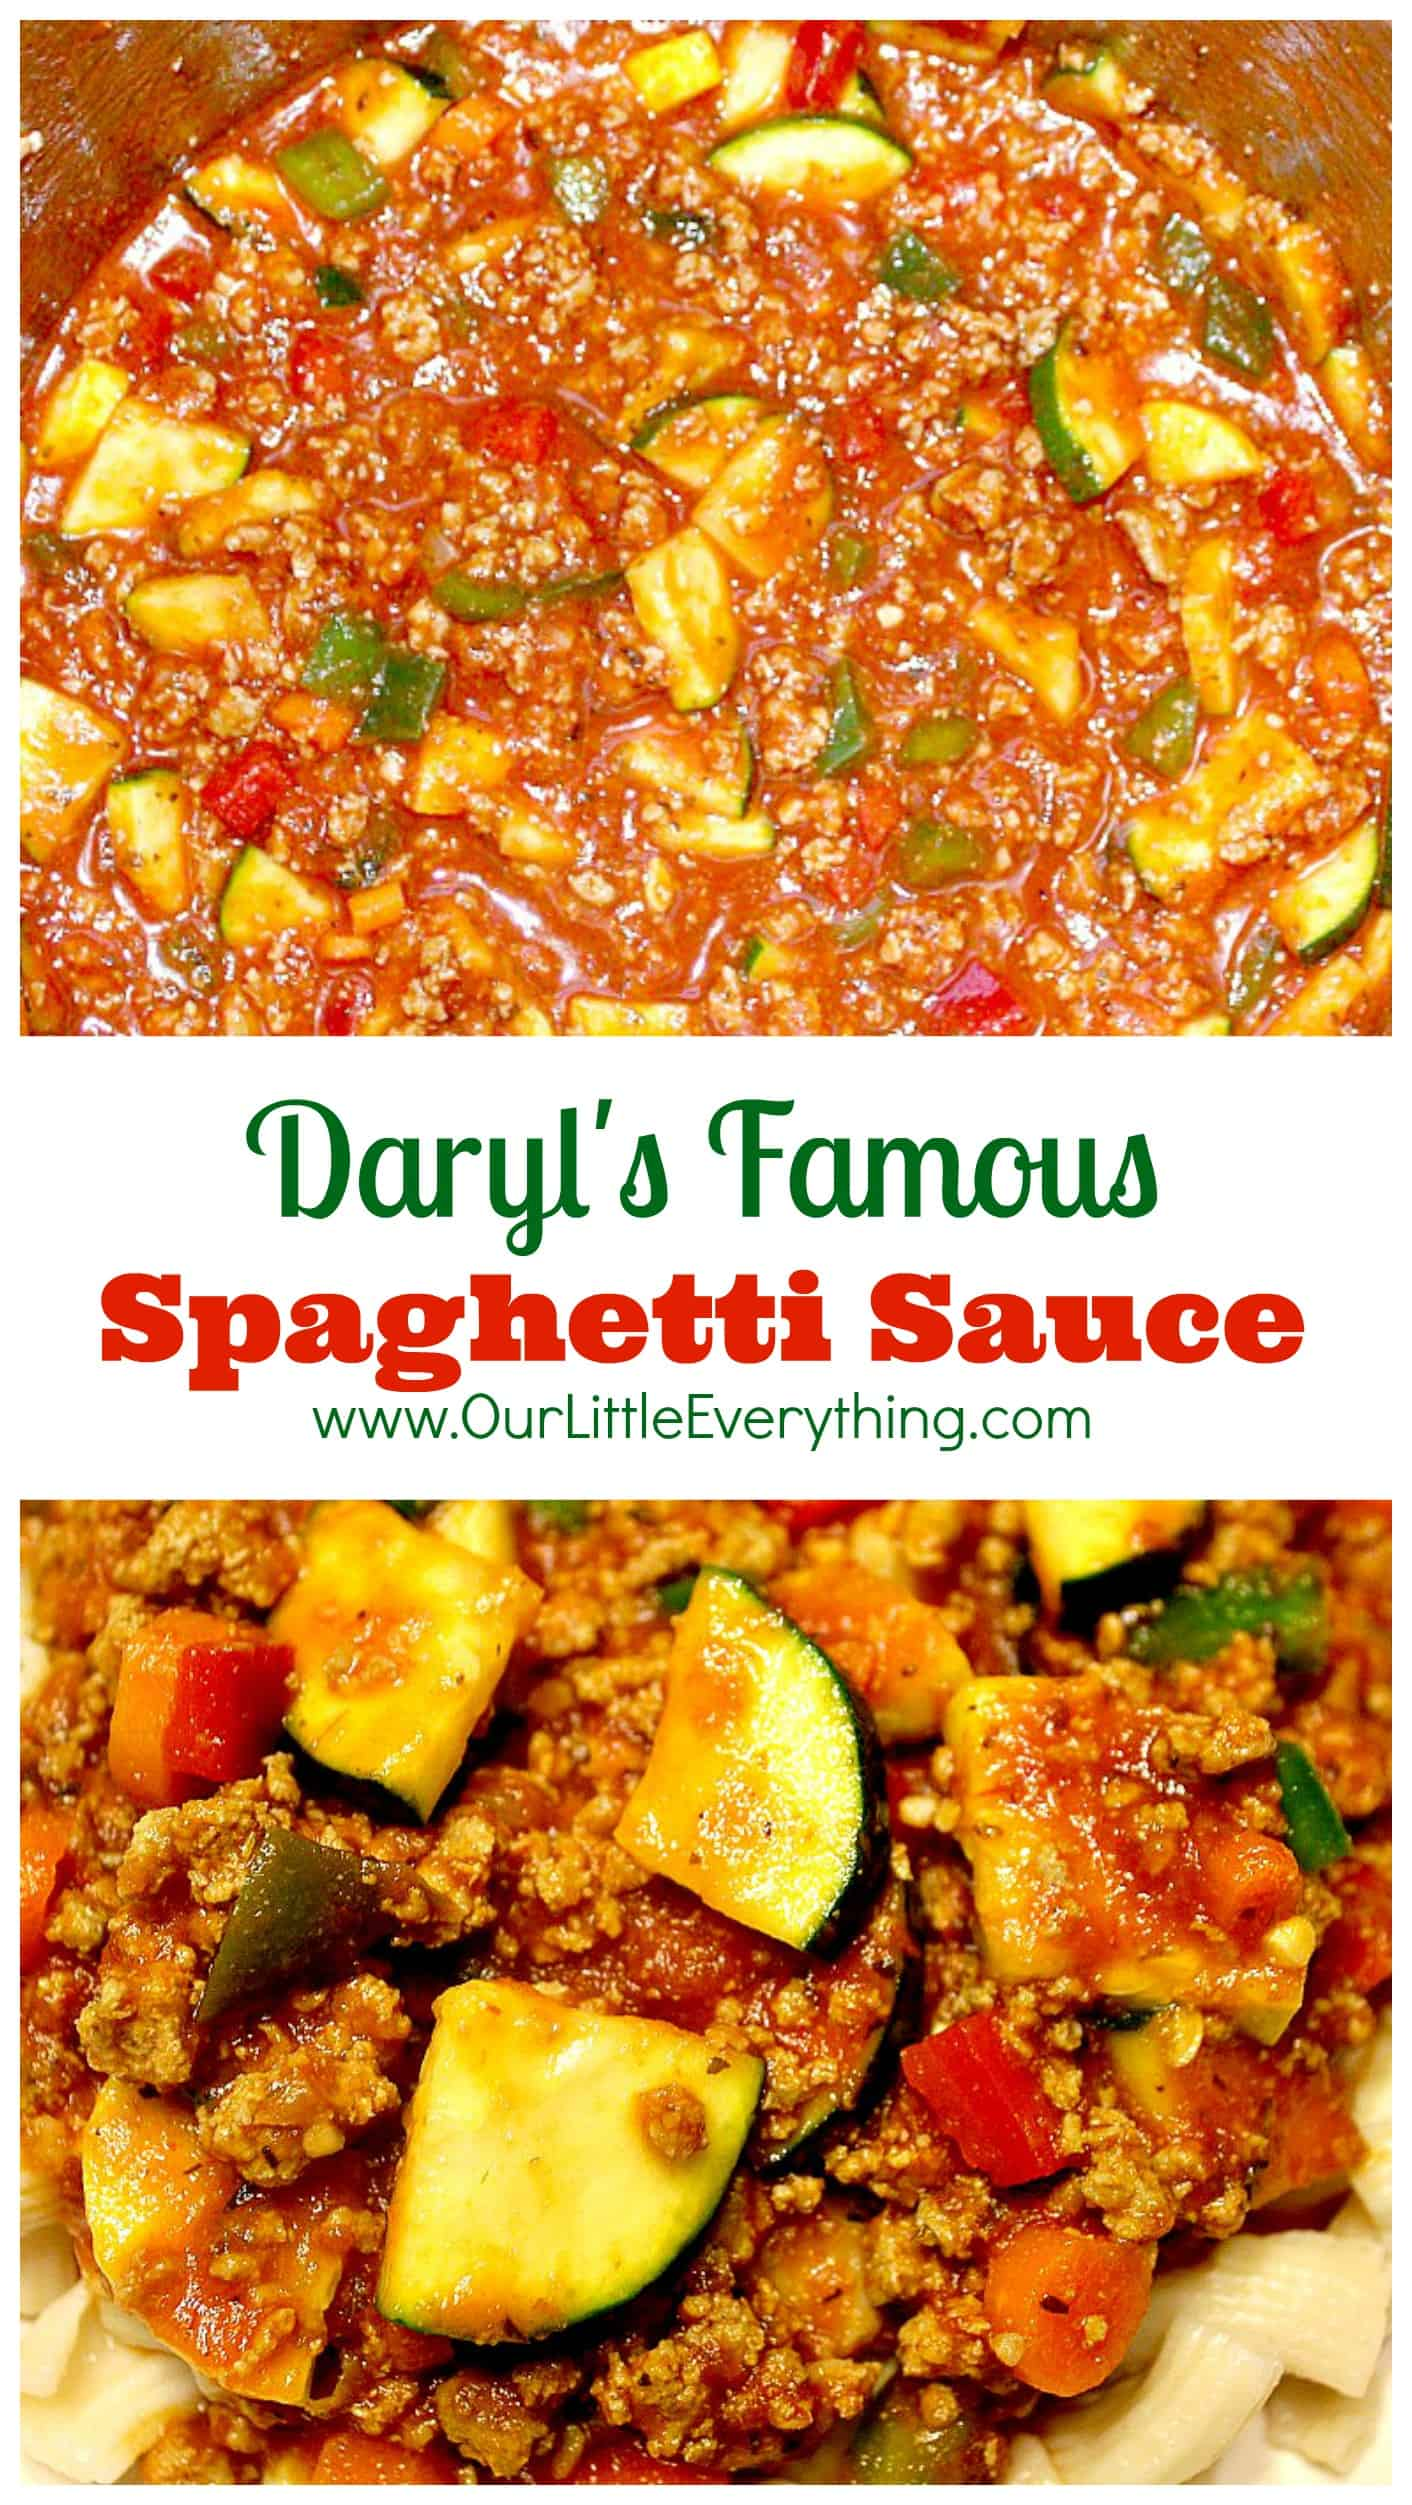 I LOVE this spaghetti sauce! Sure it's loaded with vegetables, but also with flavor! Daryl sure knew what he was doing when he created this spaghetti sauce recipe because I was NOT a fan of pasta until I tried this! | www.OurLittleEverything.com